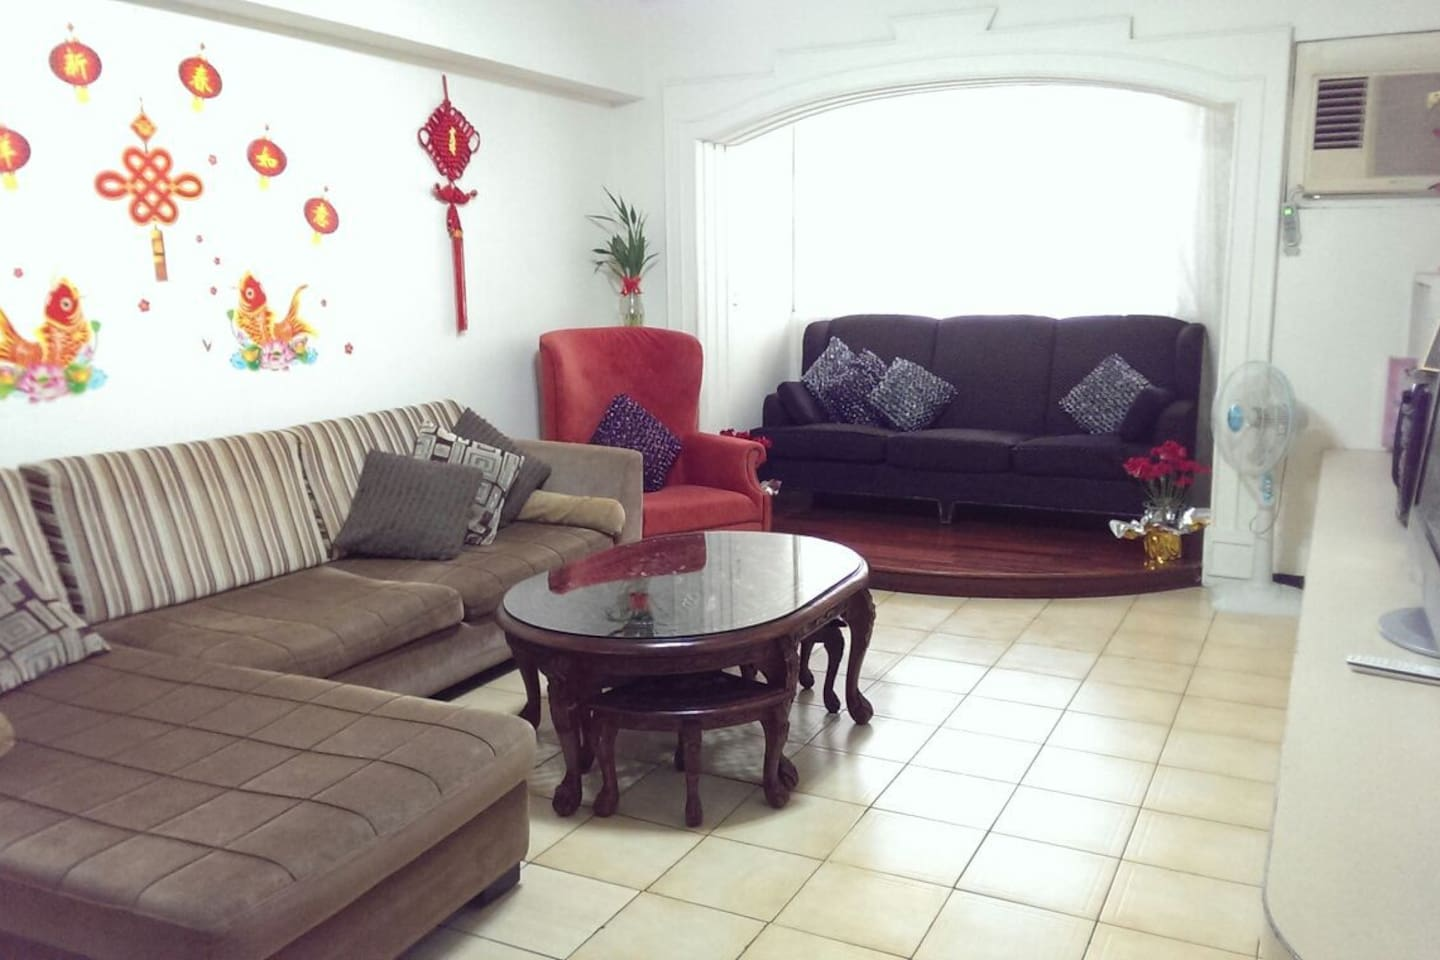 There are 3 rooms in apartment  You can rent one or two rooms, or whole apartment, the price see each picture description. Whole apartment(3 rooms) is US$110/night/5people, add 1people add US$5/night, can live 1-8peole.